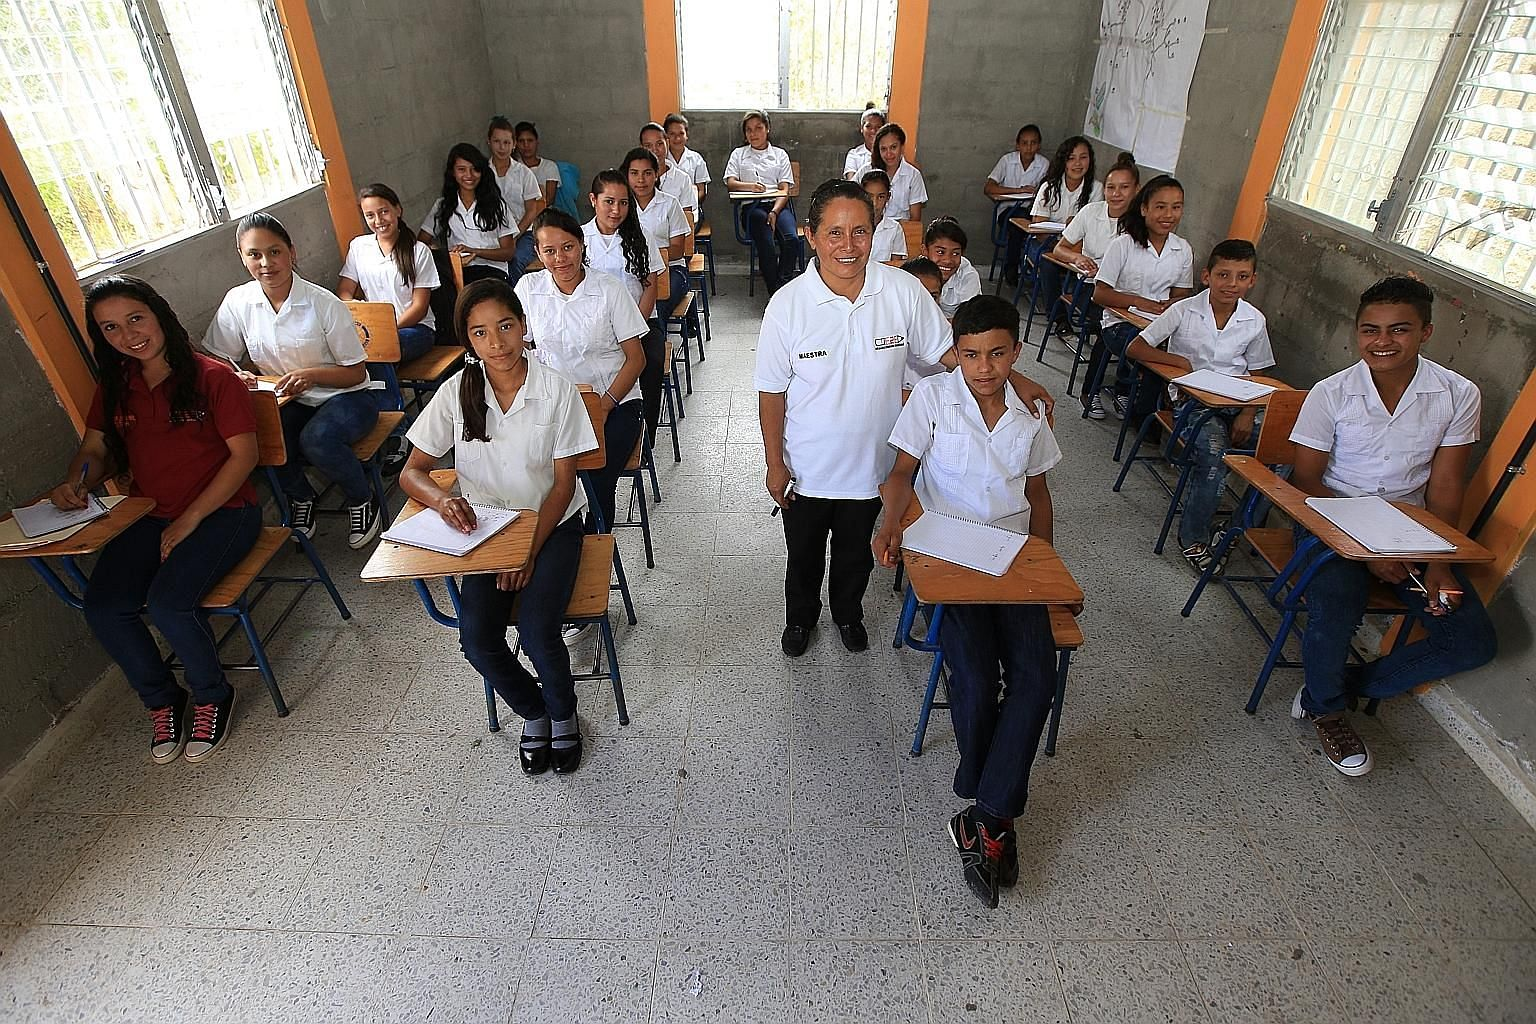 Educate2Envision is an educational programme in Honduras that aims to train entrepreneurial leaders. Since 2010, it has changed the lives of around 100 students from the rural communities of two villages.